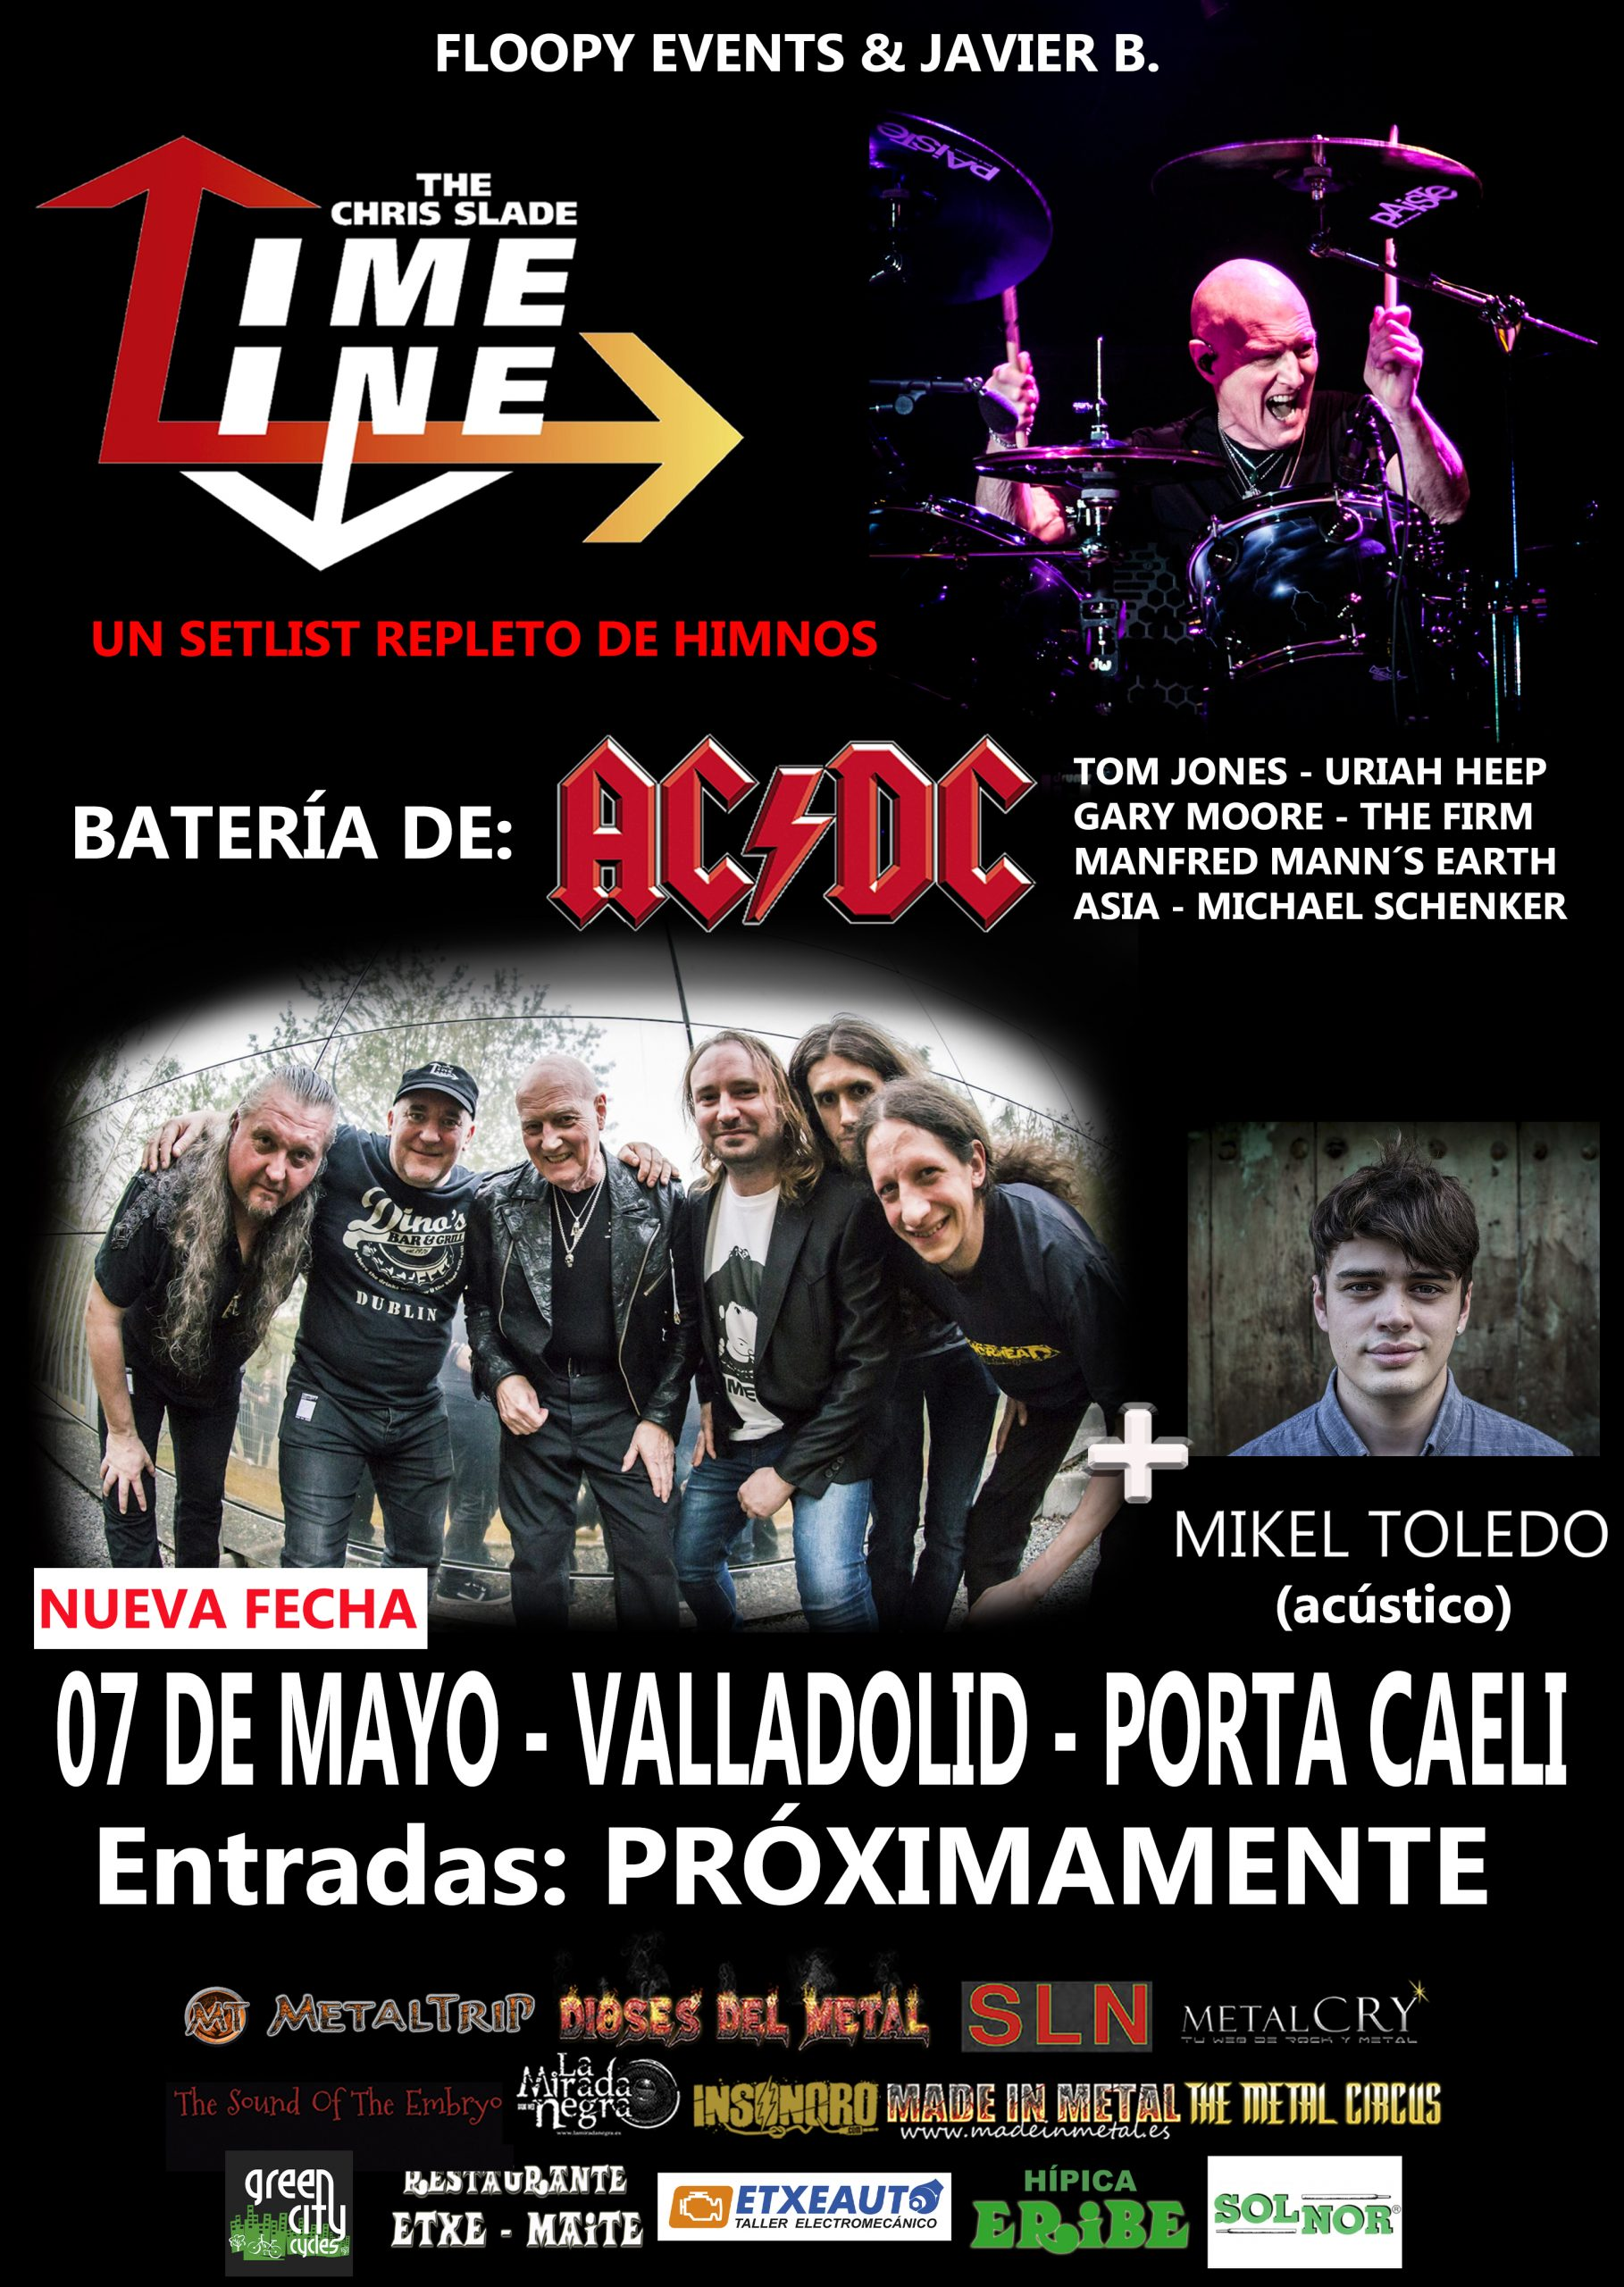 CARTEL vALLADOLID Chris Slade DEF